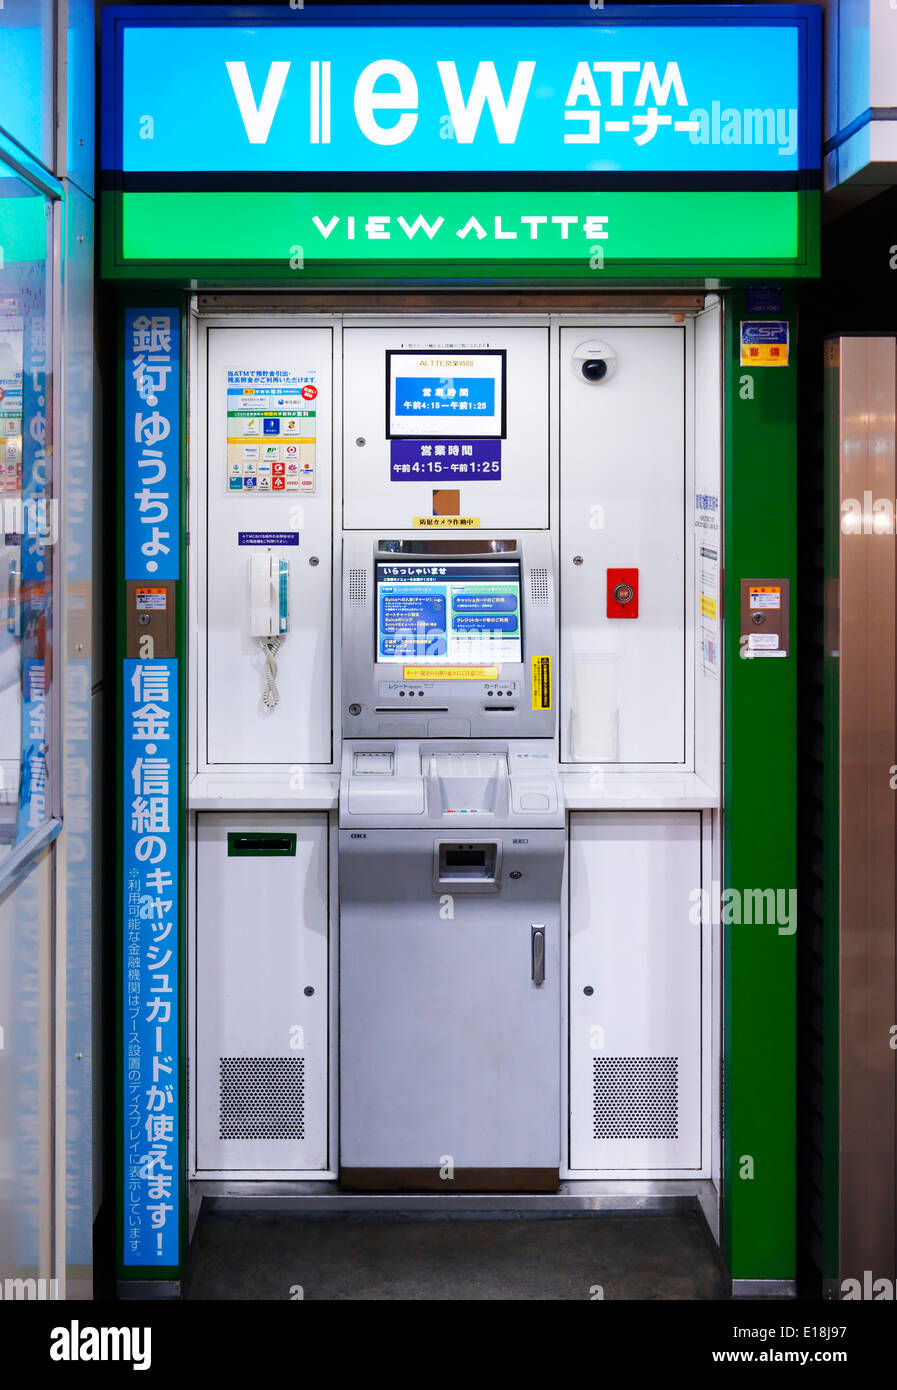 View Altte ATM banking machine in Tokyo, Japan. - Stock Image